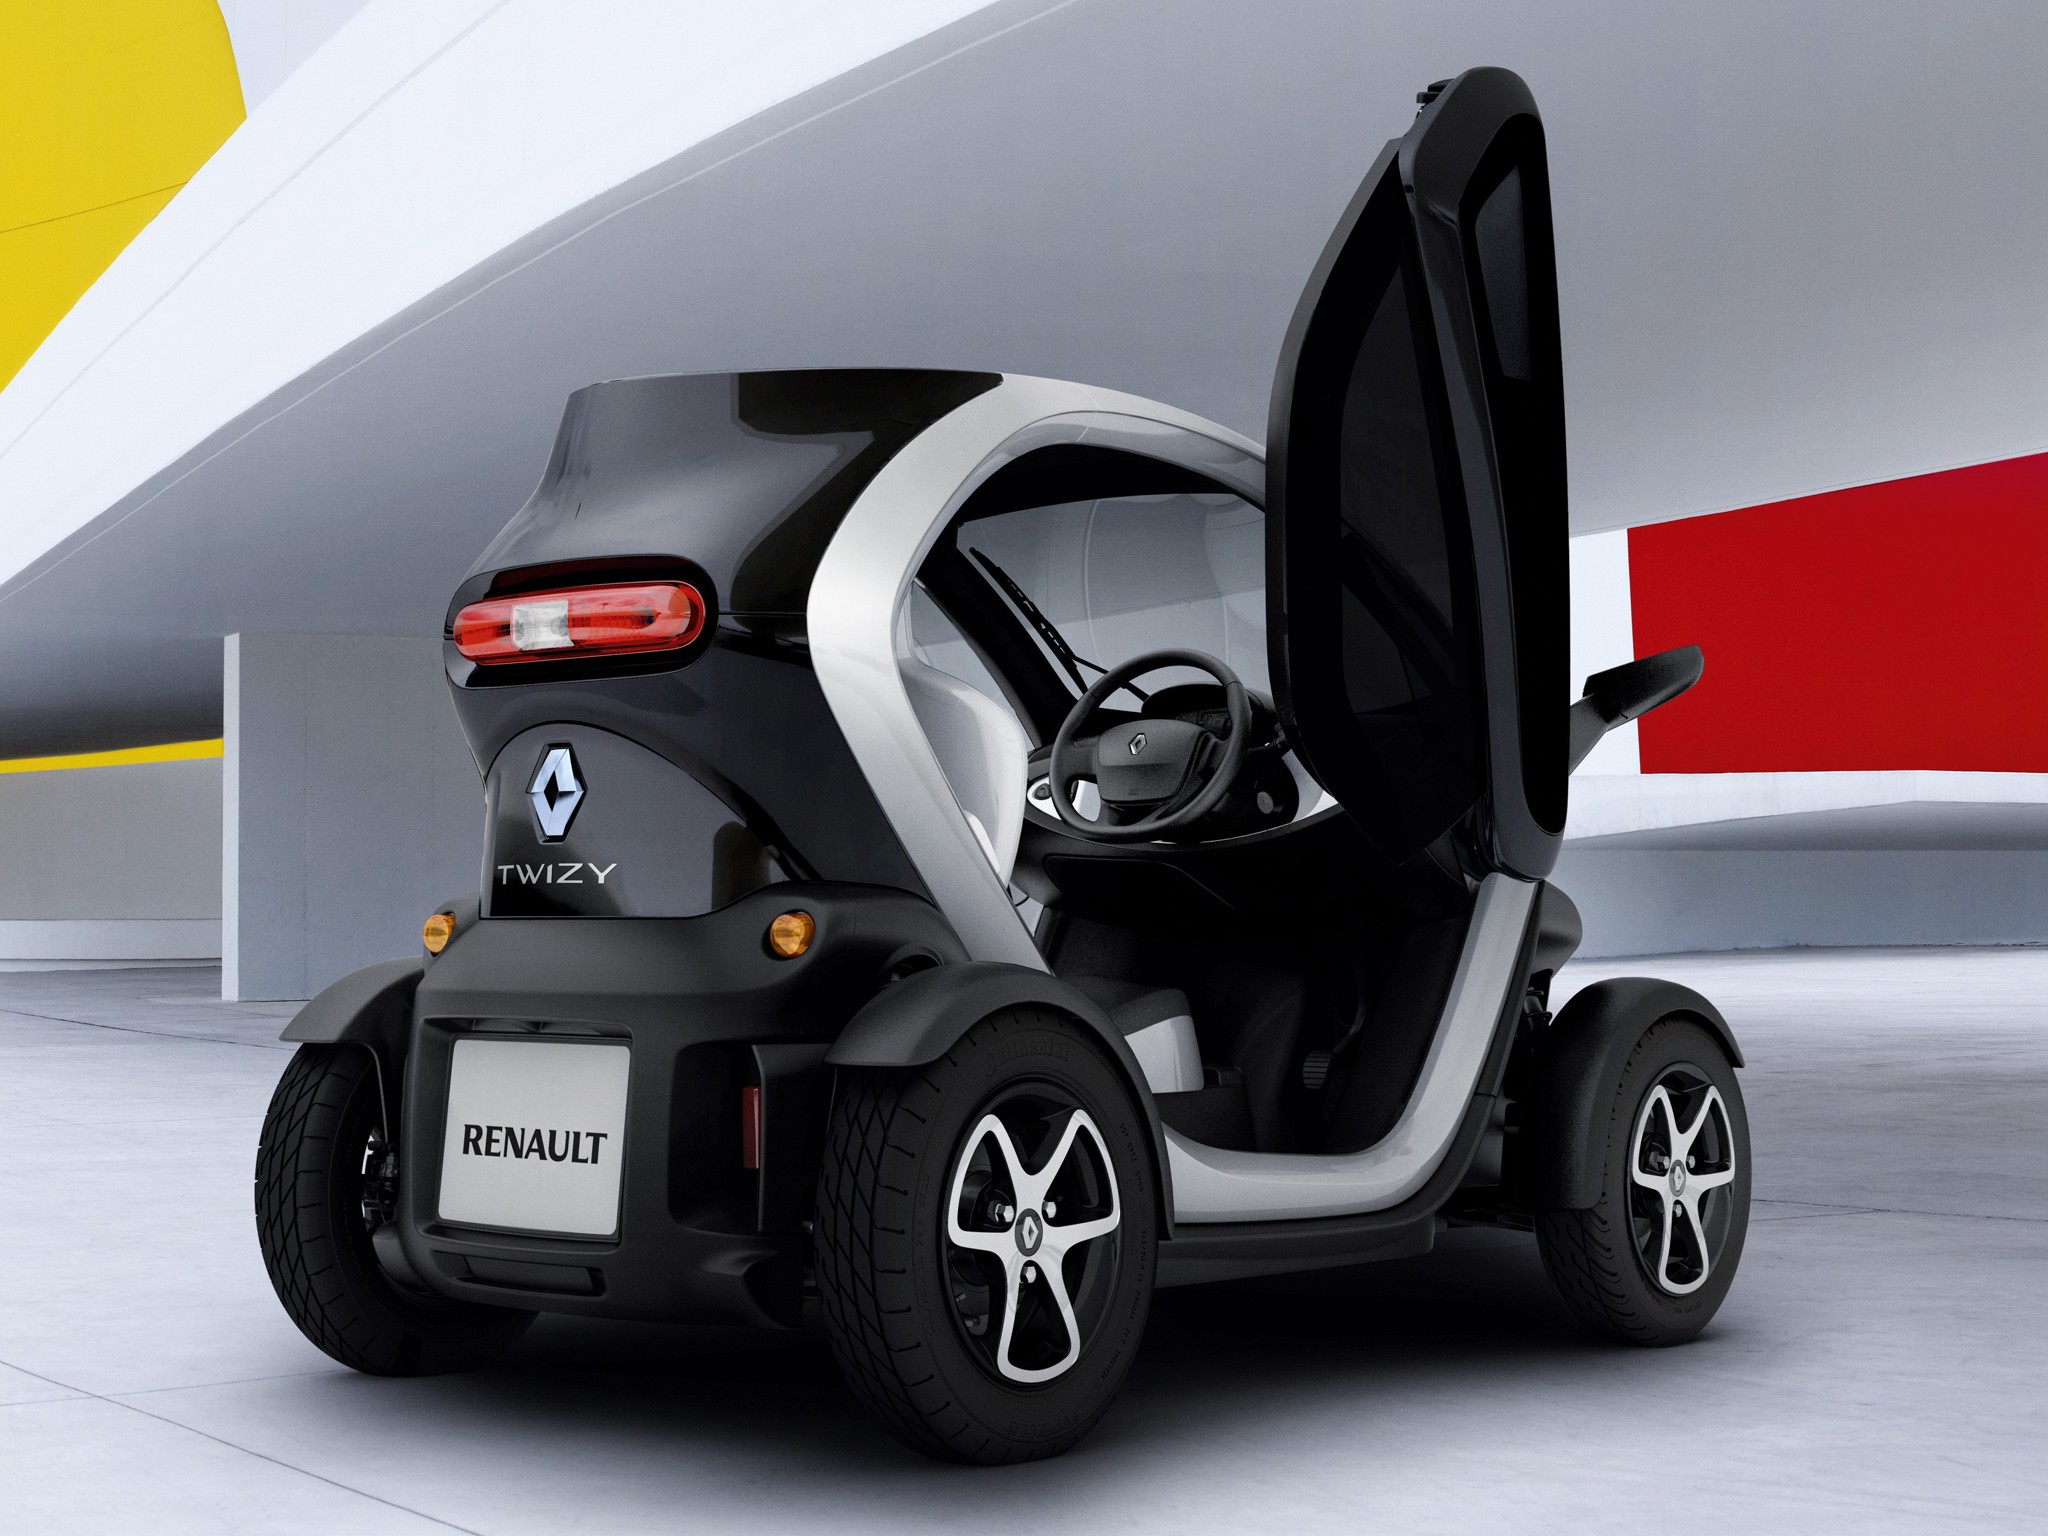 renault twizy specs photos 2012 2013 2014 2015. Black Bedroom Furniture Sets. Home Design Ideas